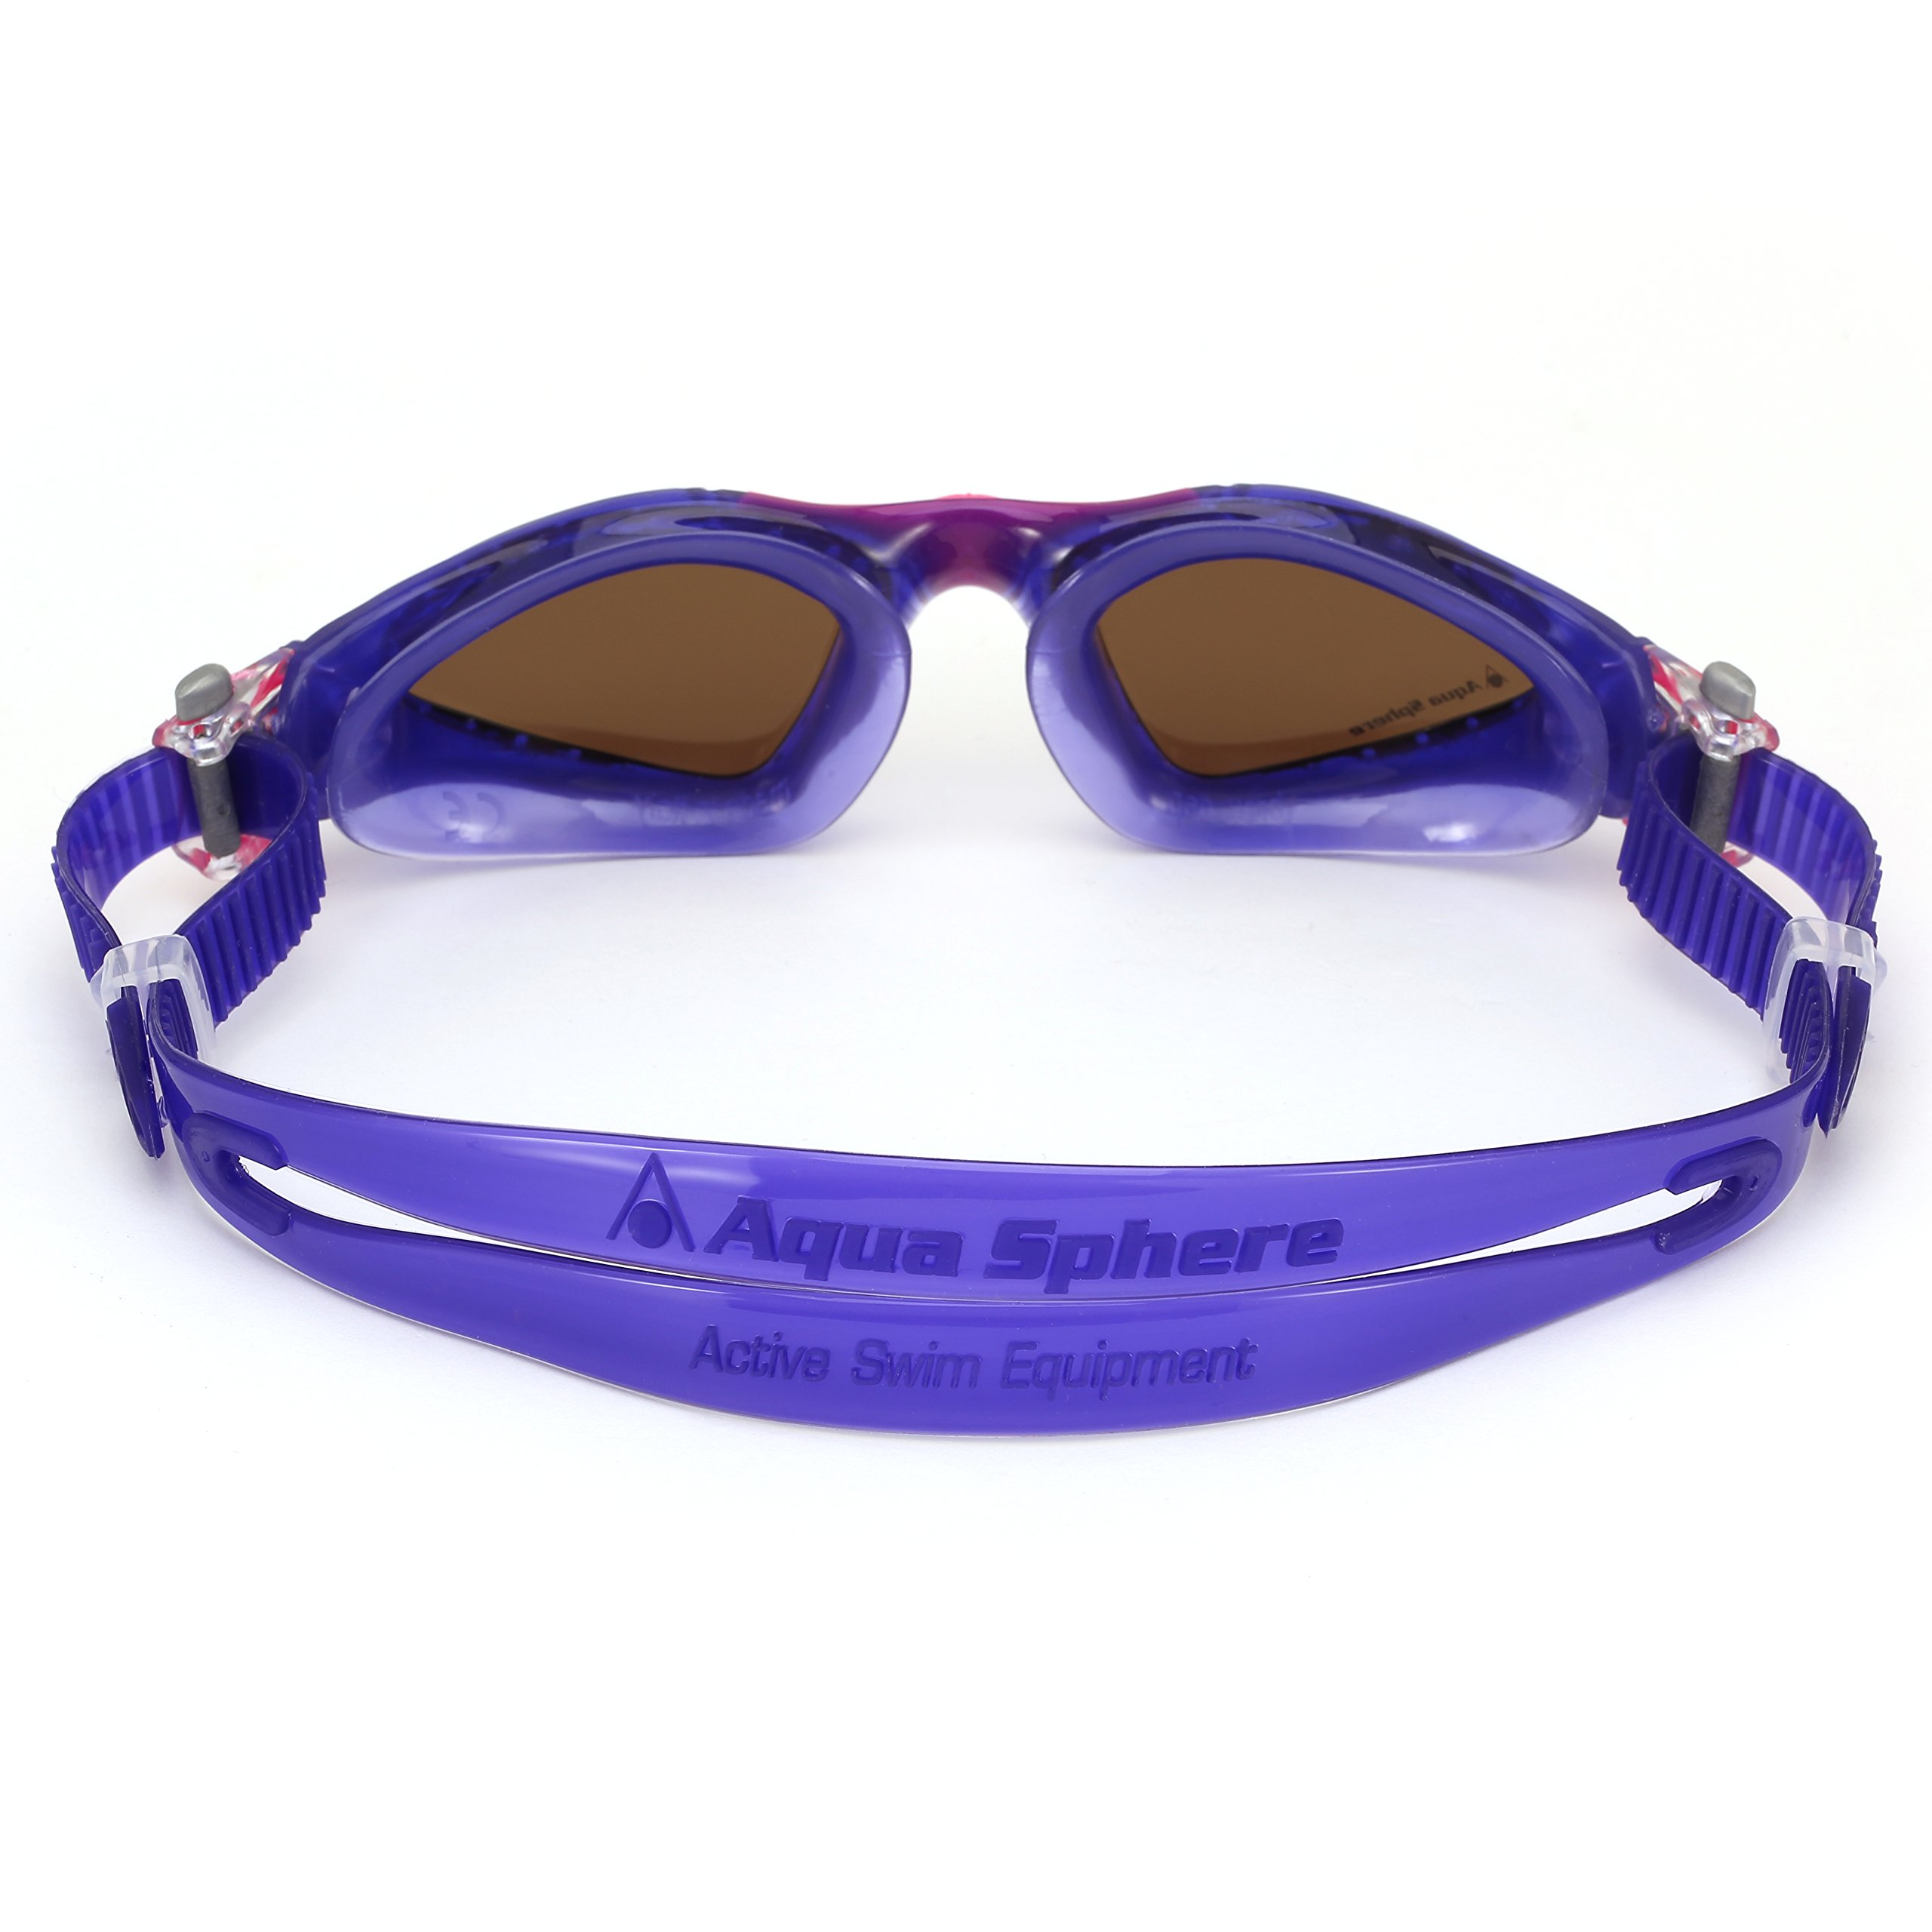 Aqua Sphere Kayenne Ladies Swimming Goggles Polarized Lens, Violet & Pink UV Protection Anto Fog Swim Goggles for Women by Aqua Sphere (Image #2)